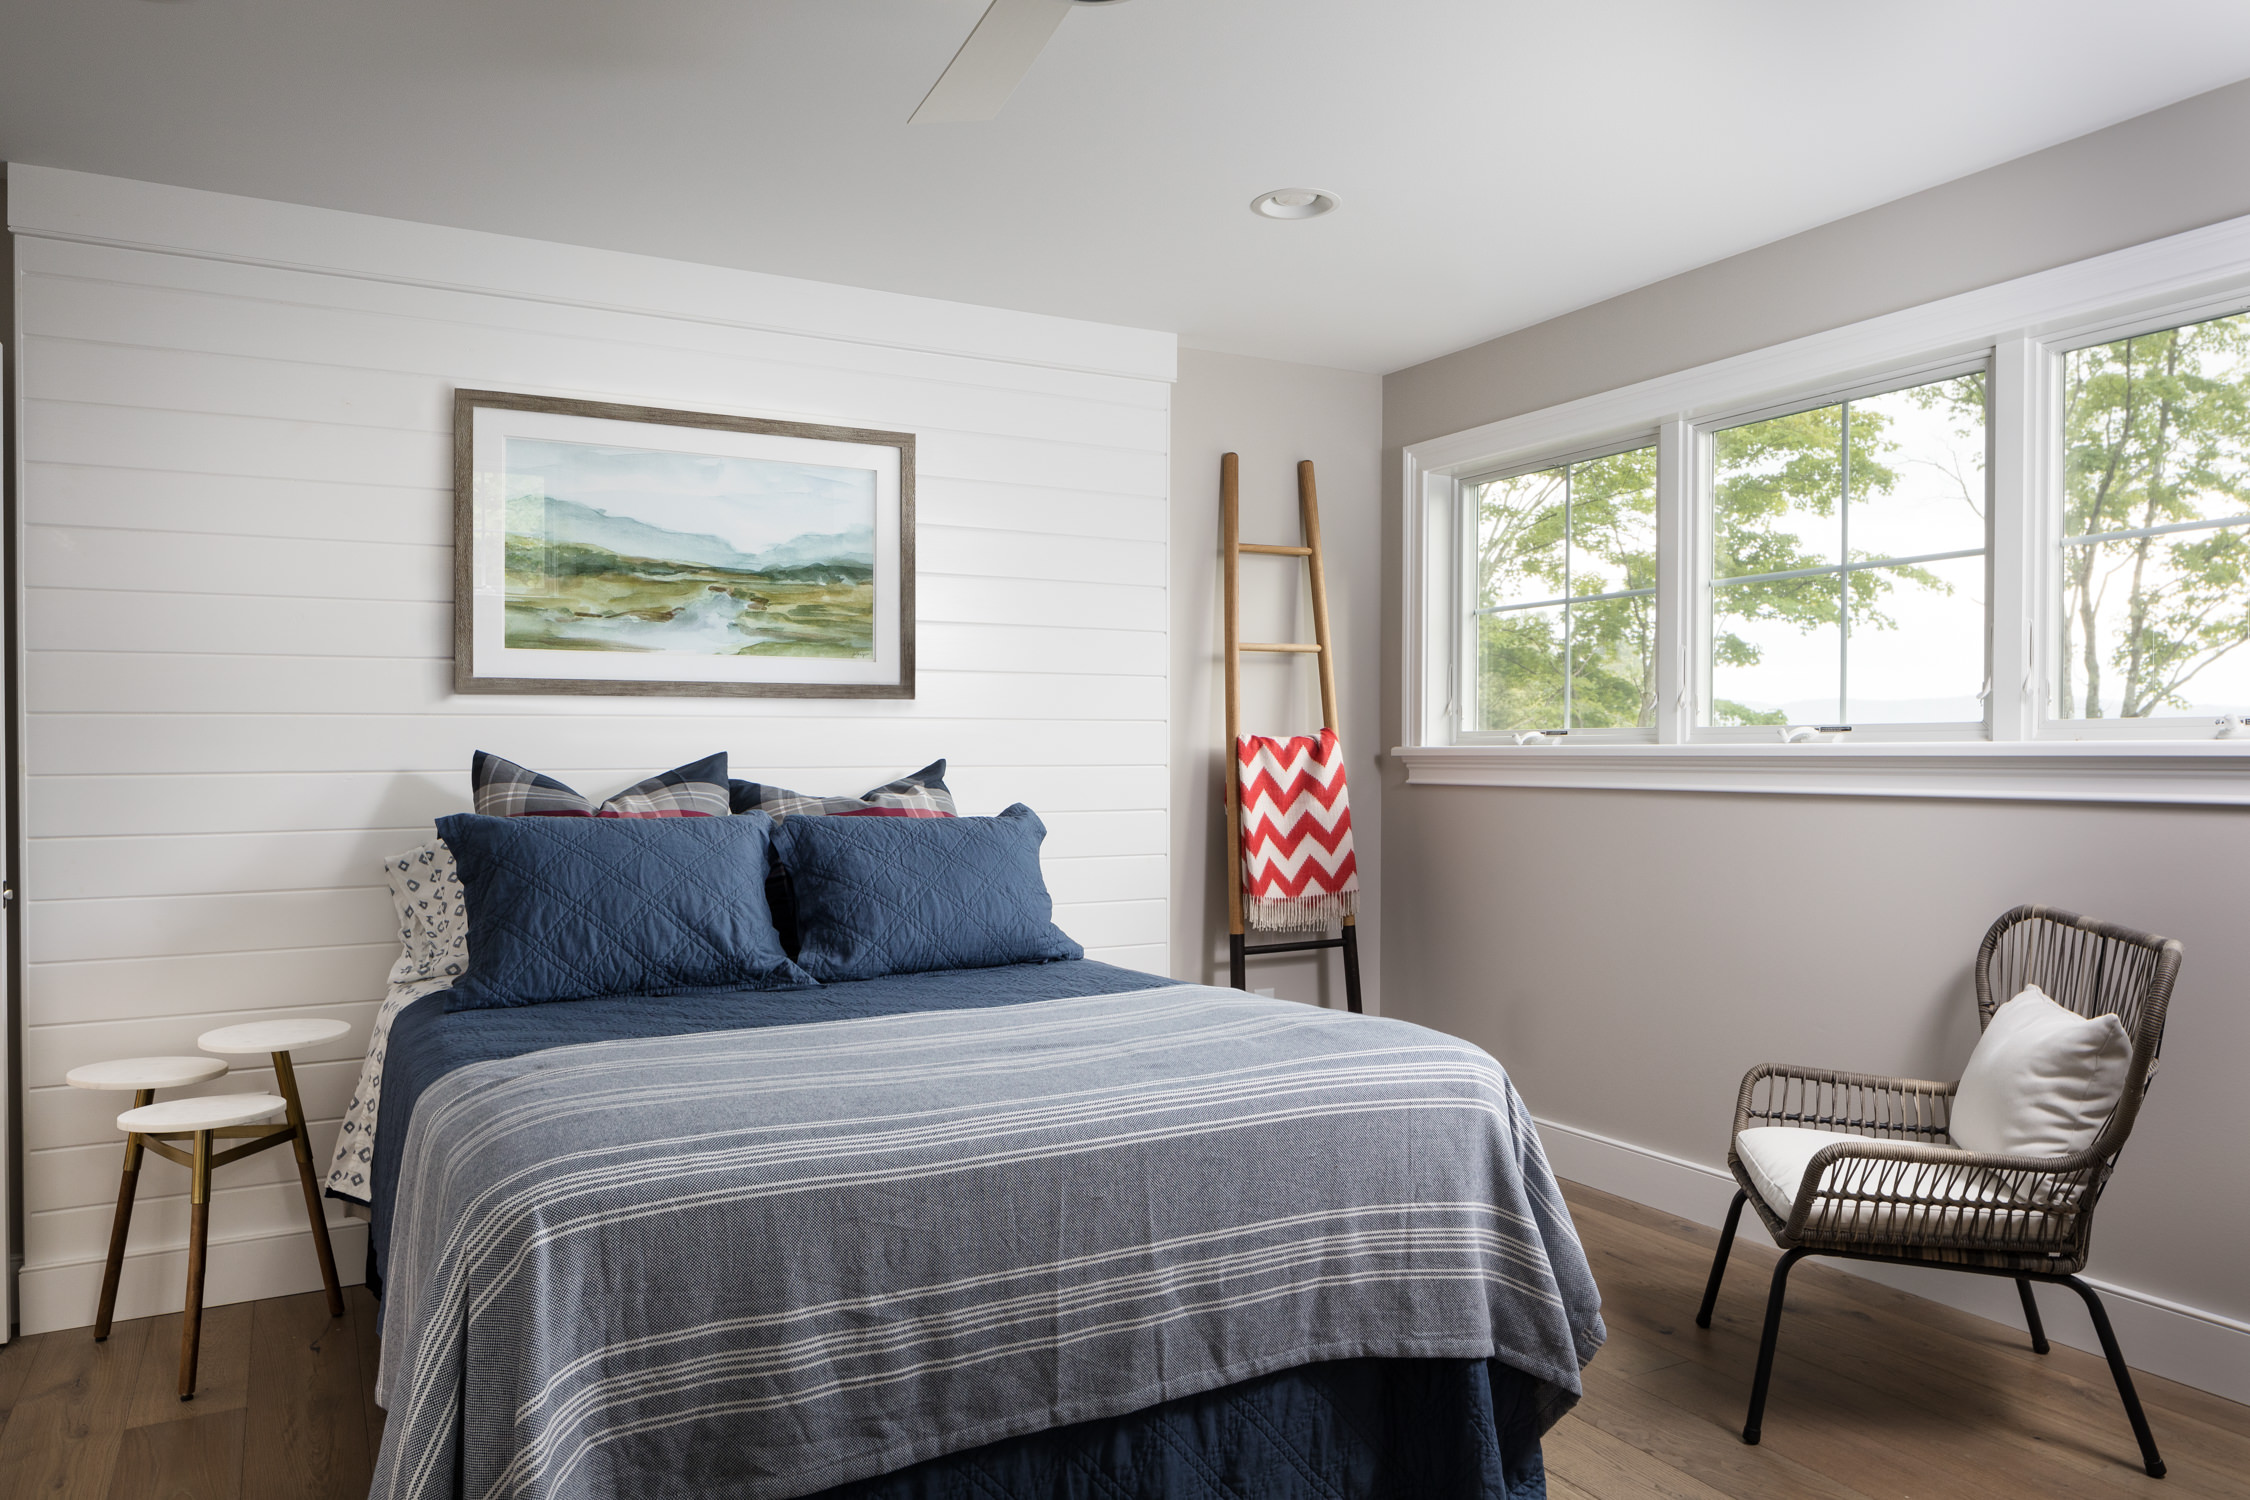 Photo of the rustic chic interior design of a casual guest bedroom in a northern Vermont lake home taken by Stina Booth